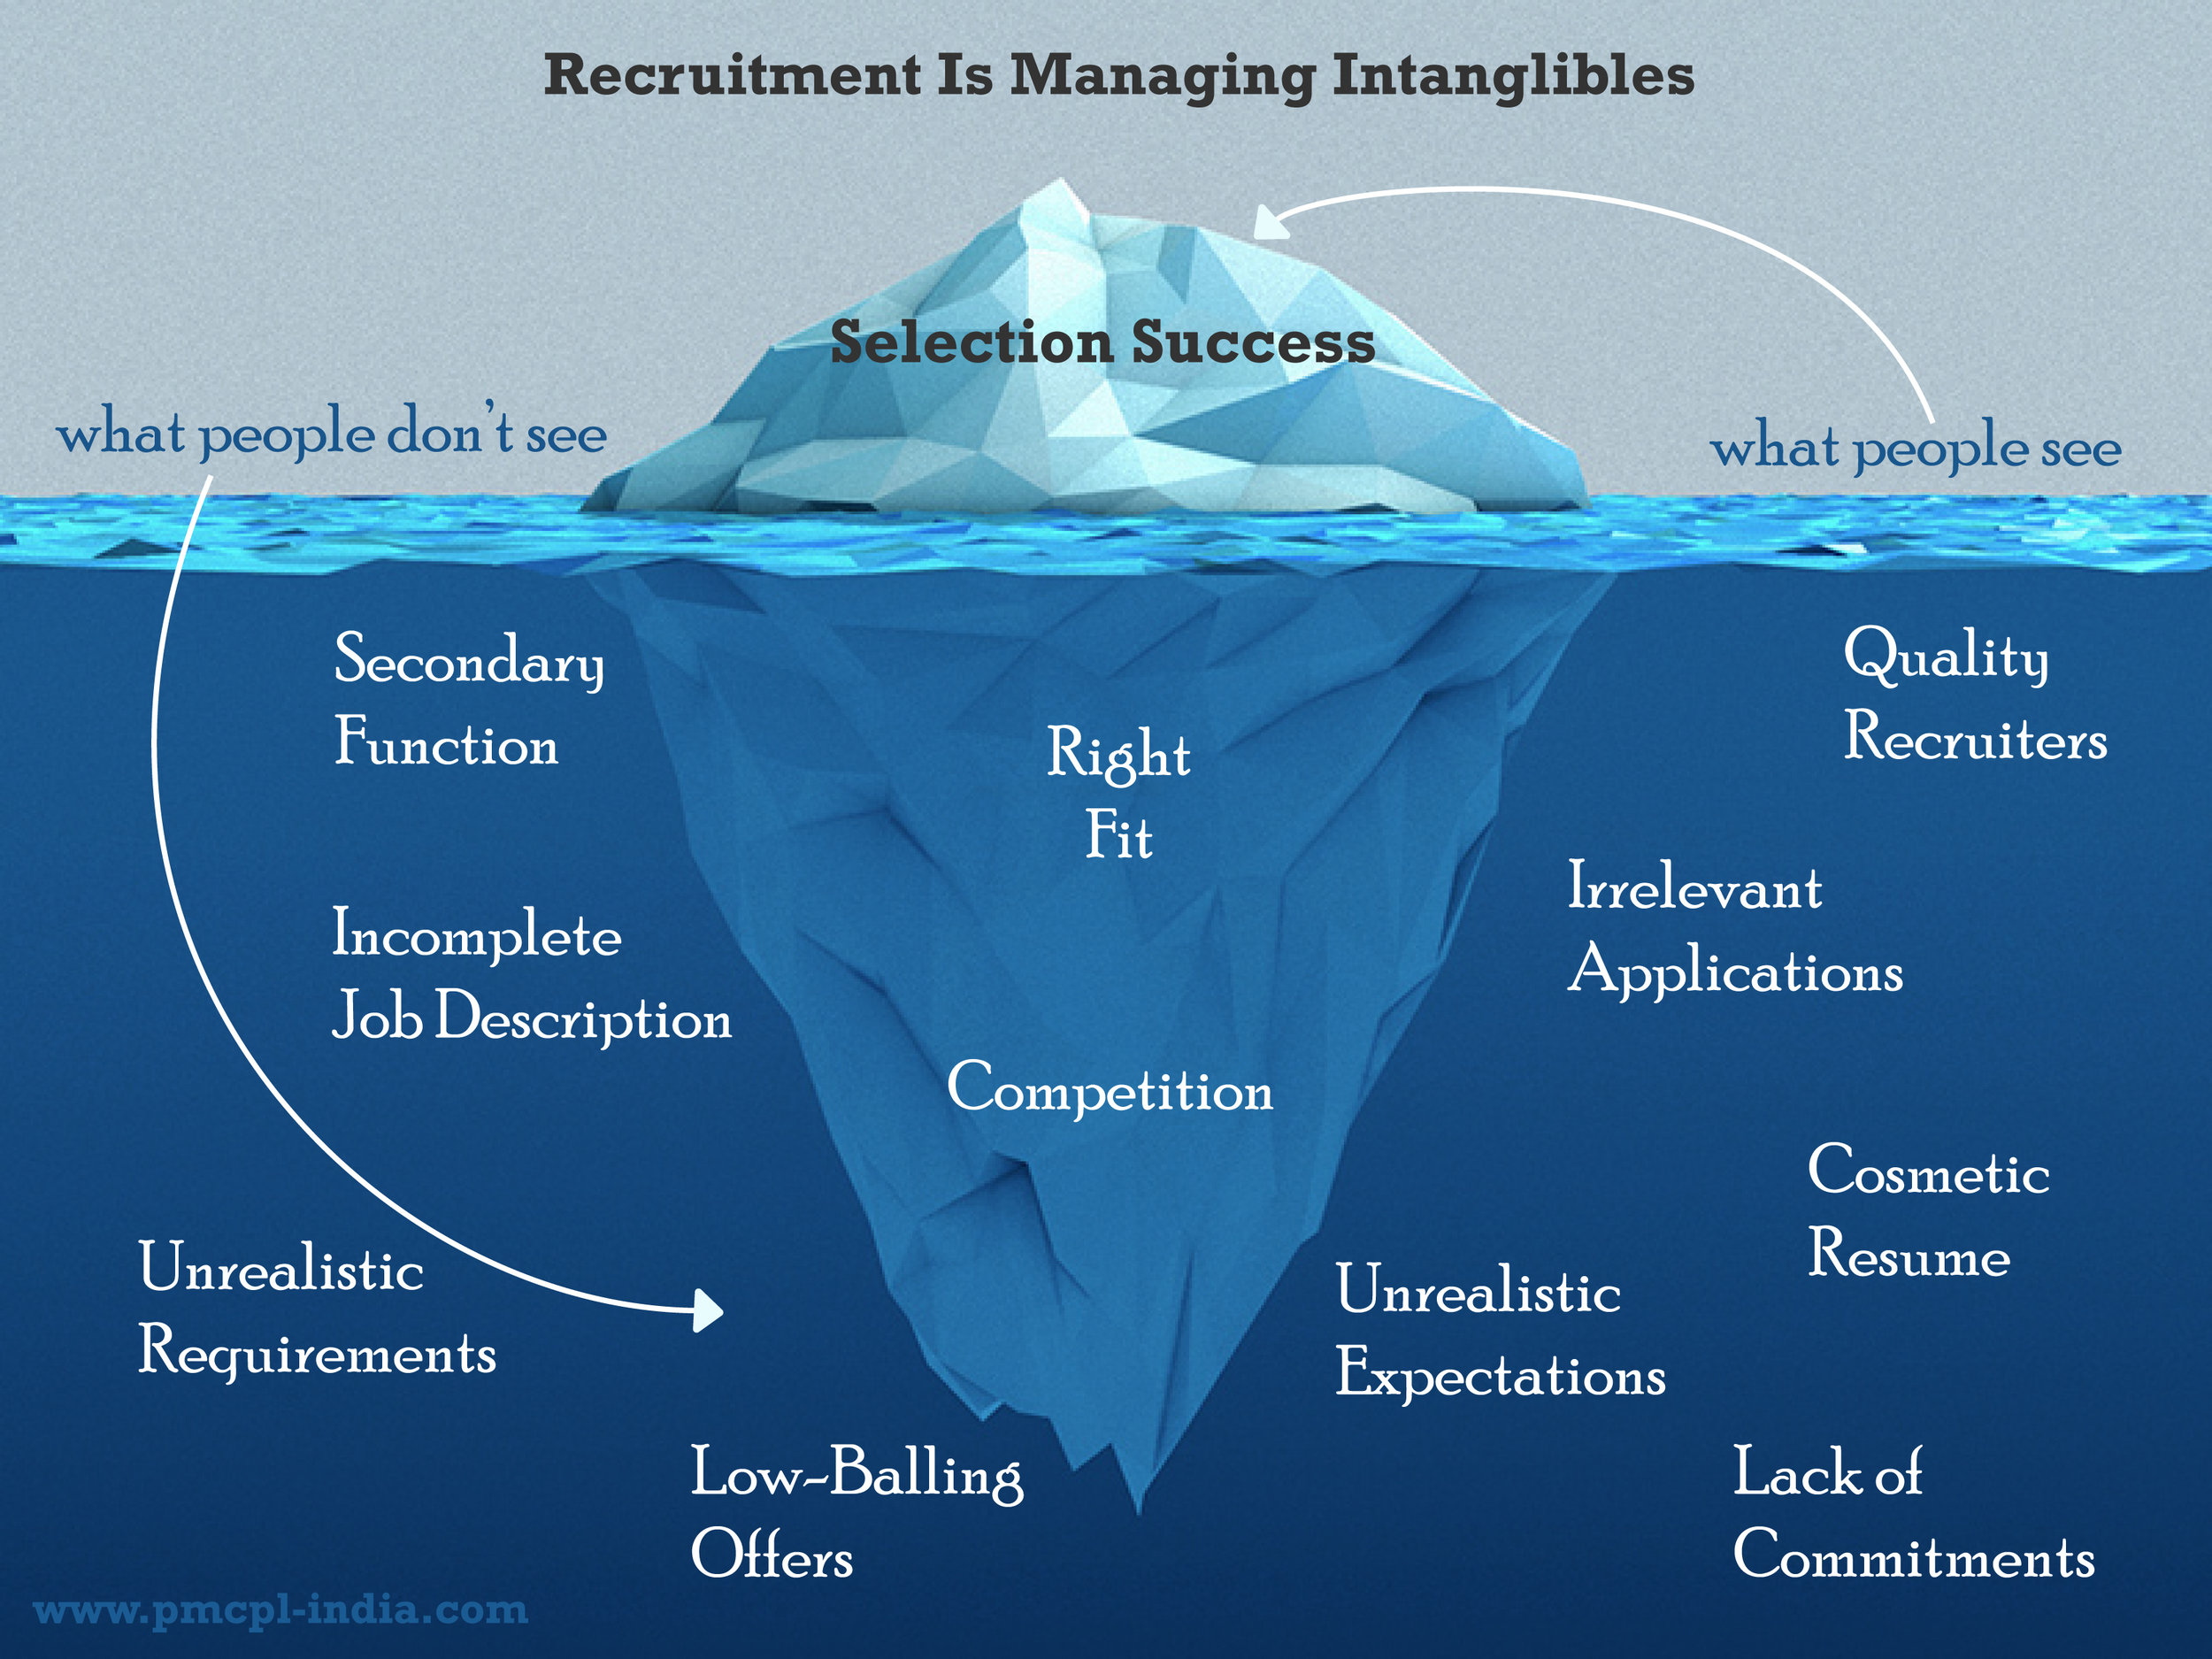 Find out more on the  Top Recruitment Challenges  from the Source of the above Iceberg